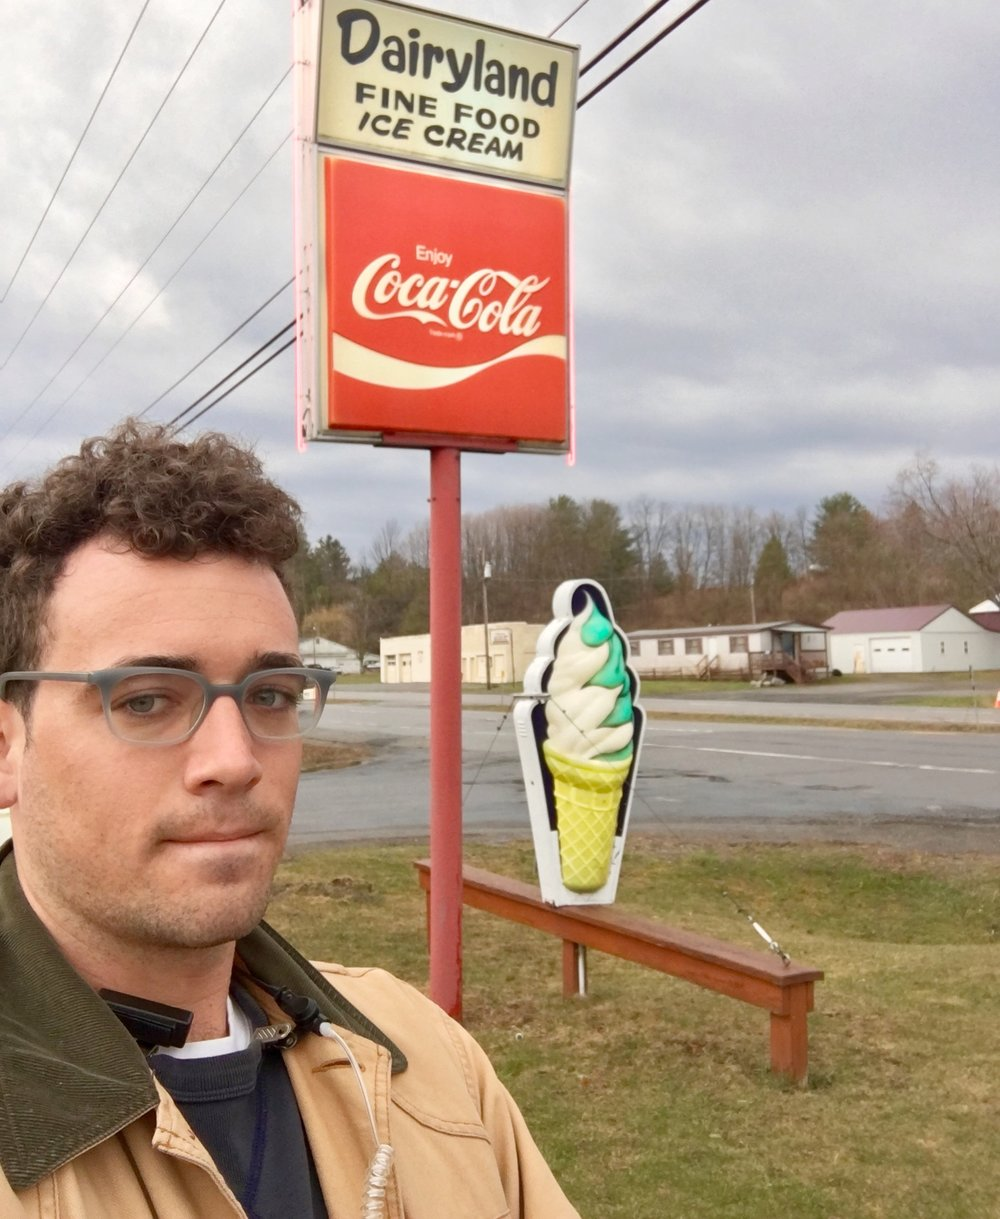 Ben Keeshin - I'm a writer, editor and production coordinator who graduated Wesleyan U with degrees in English and Music. I can do editorial, branded content and copy.My cultural touchstones are 'My Best Friend's Wedding,'preppy Mercedes-Benz print ads from the Eighties and Aretha Franklin's gospel album. Find me often on Facebook Messenger.